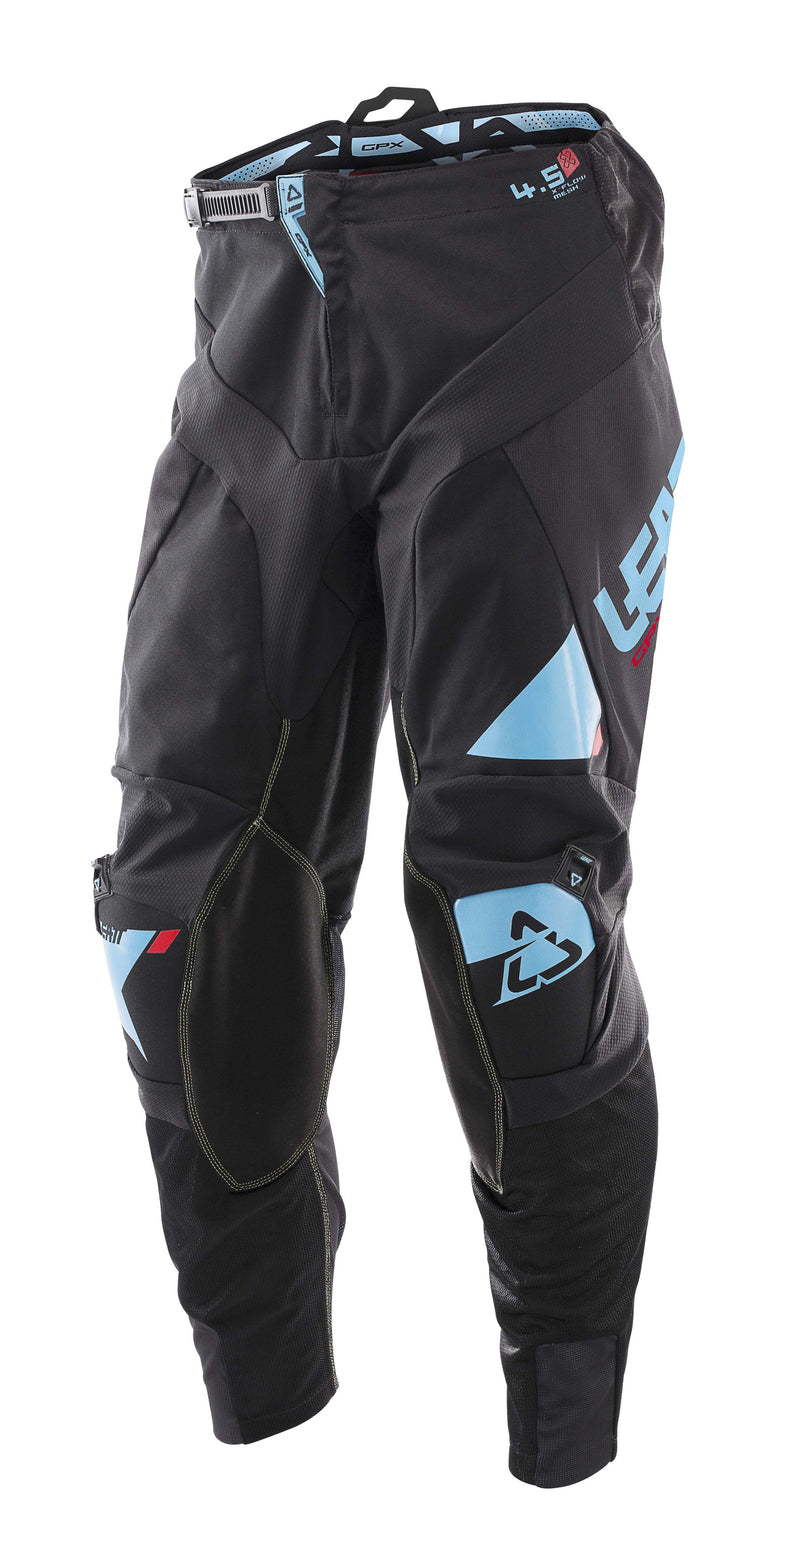 2017 Pant Gpx 4.5 Lite Black Blue